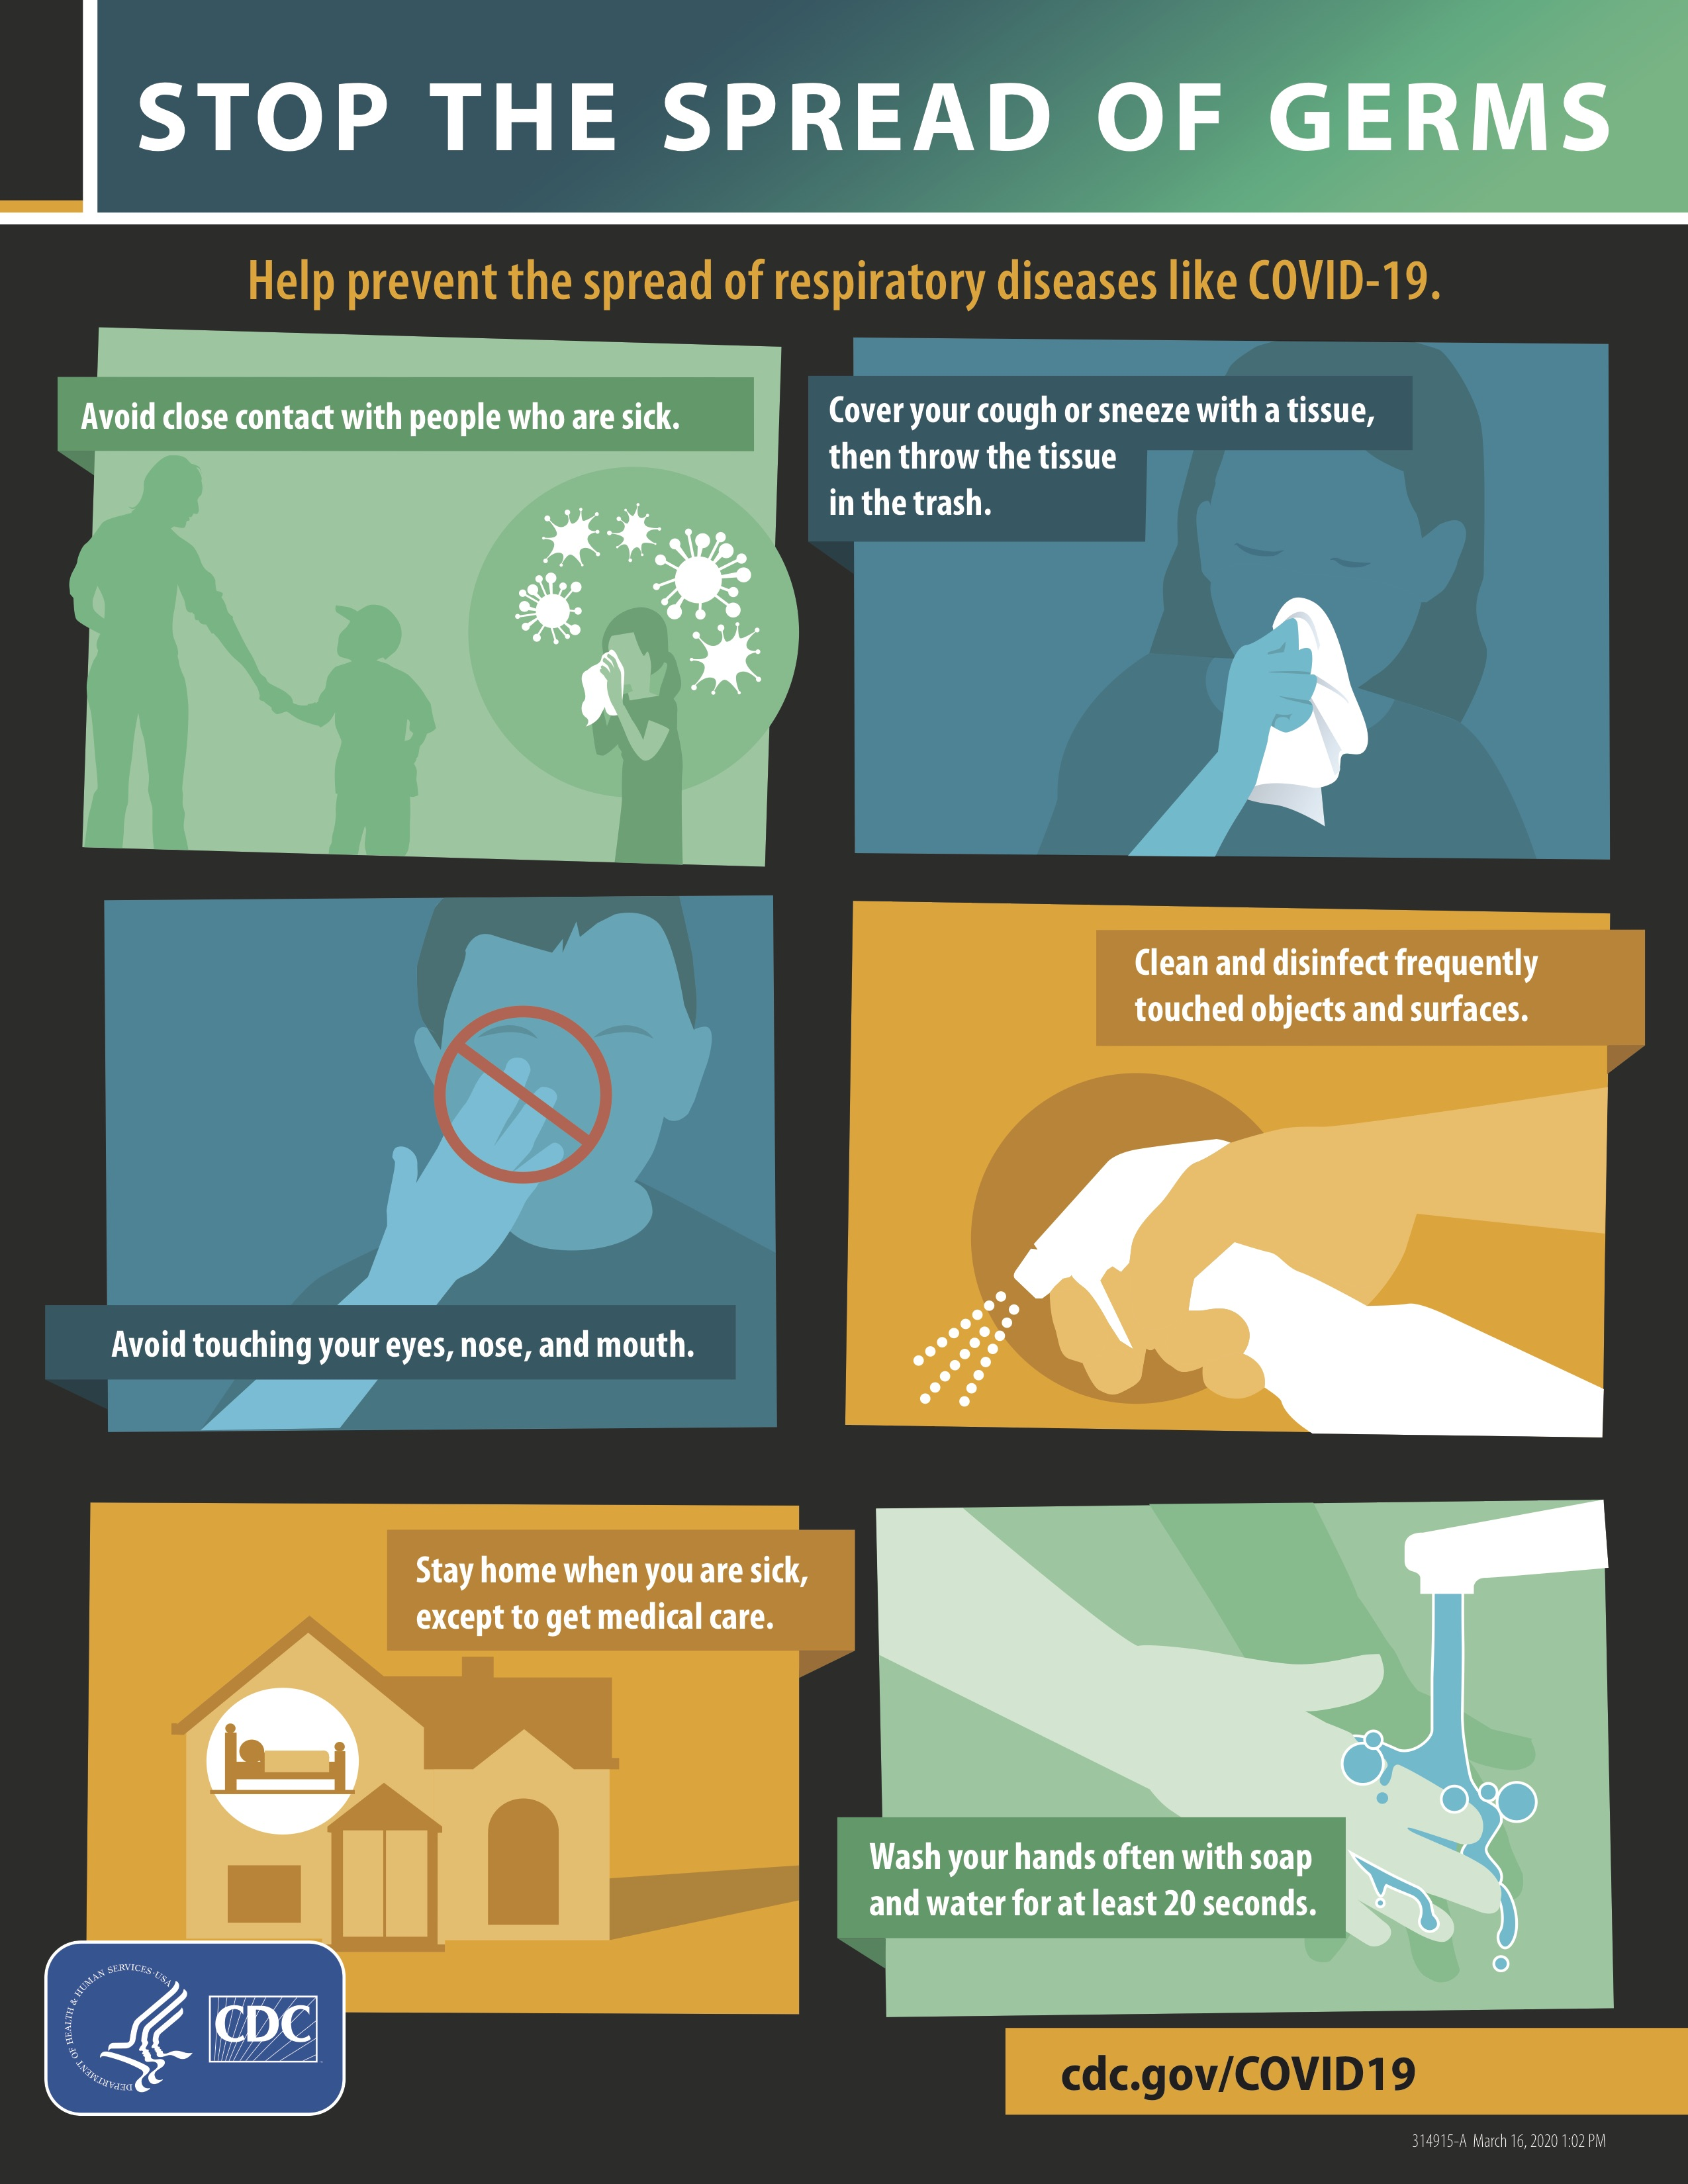 https://www.cdc.gov/coronavirus/2019-ncov/prepare/prevention.html